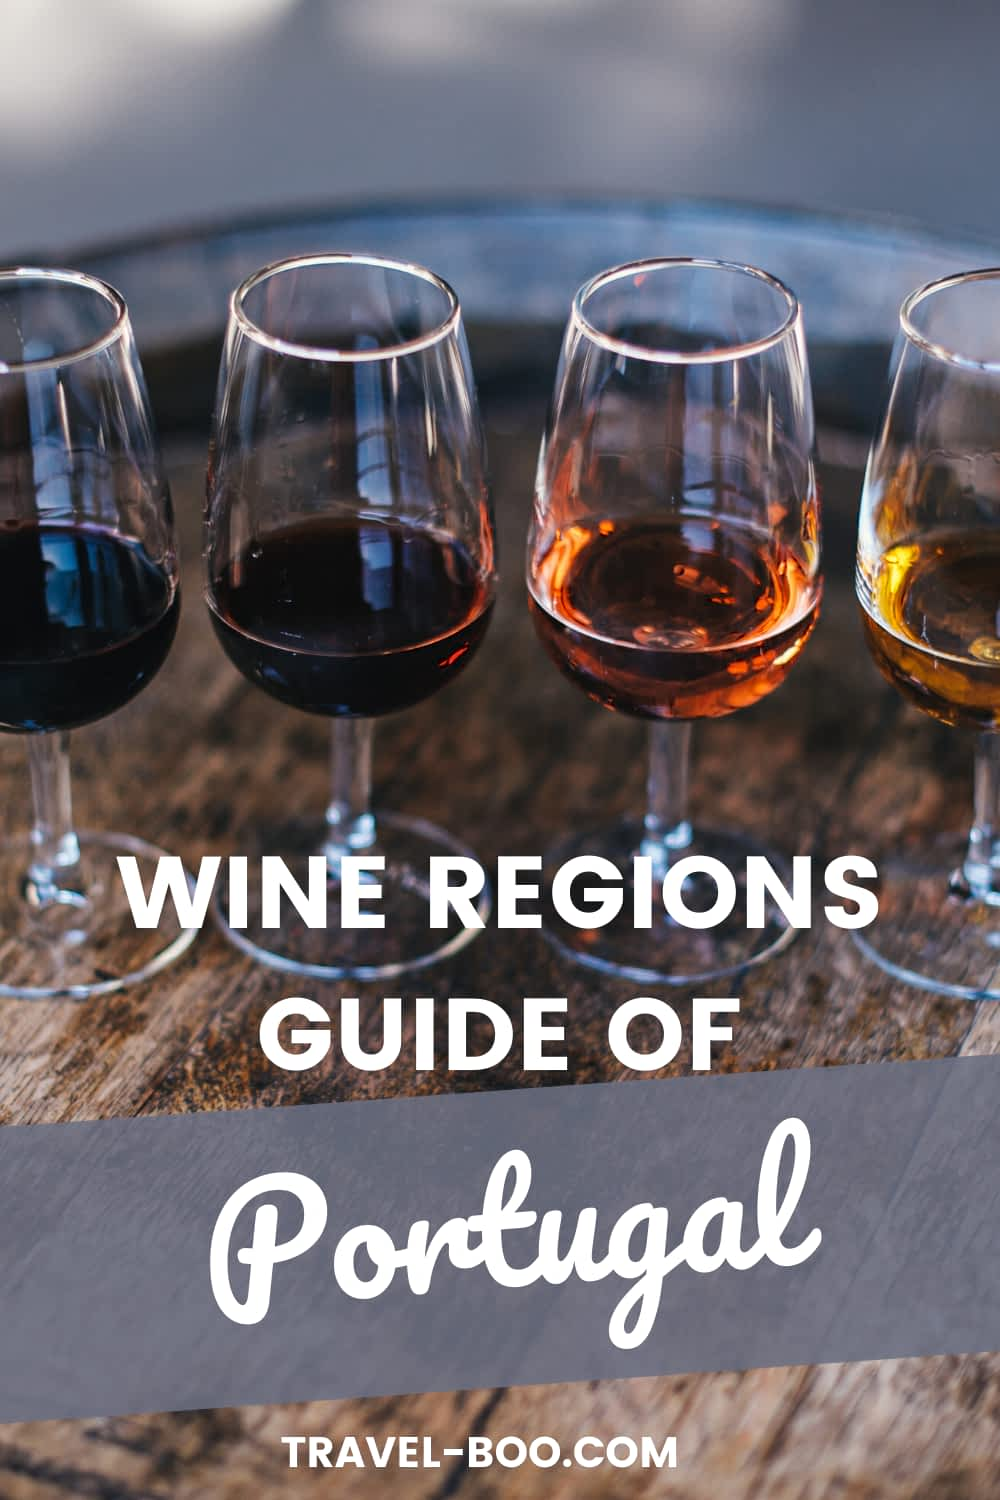 Visiting Portugal? Read our guide on the best wine regions of Portugal! Portugal Travel, Portugal Travel Guides, Portugal Travel Things to do, Portugal Travel Tips, Lisbon Travel, Porto Travel, Madeira Travel, Douro Valley Portugal. #portugaltravel #portotravel #portugaltravelguides #lisbontravel